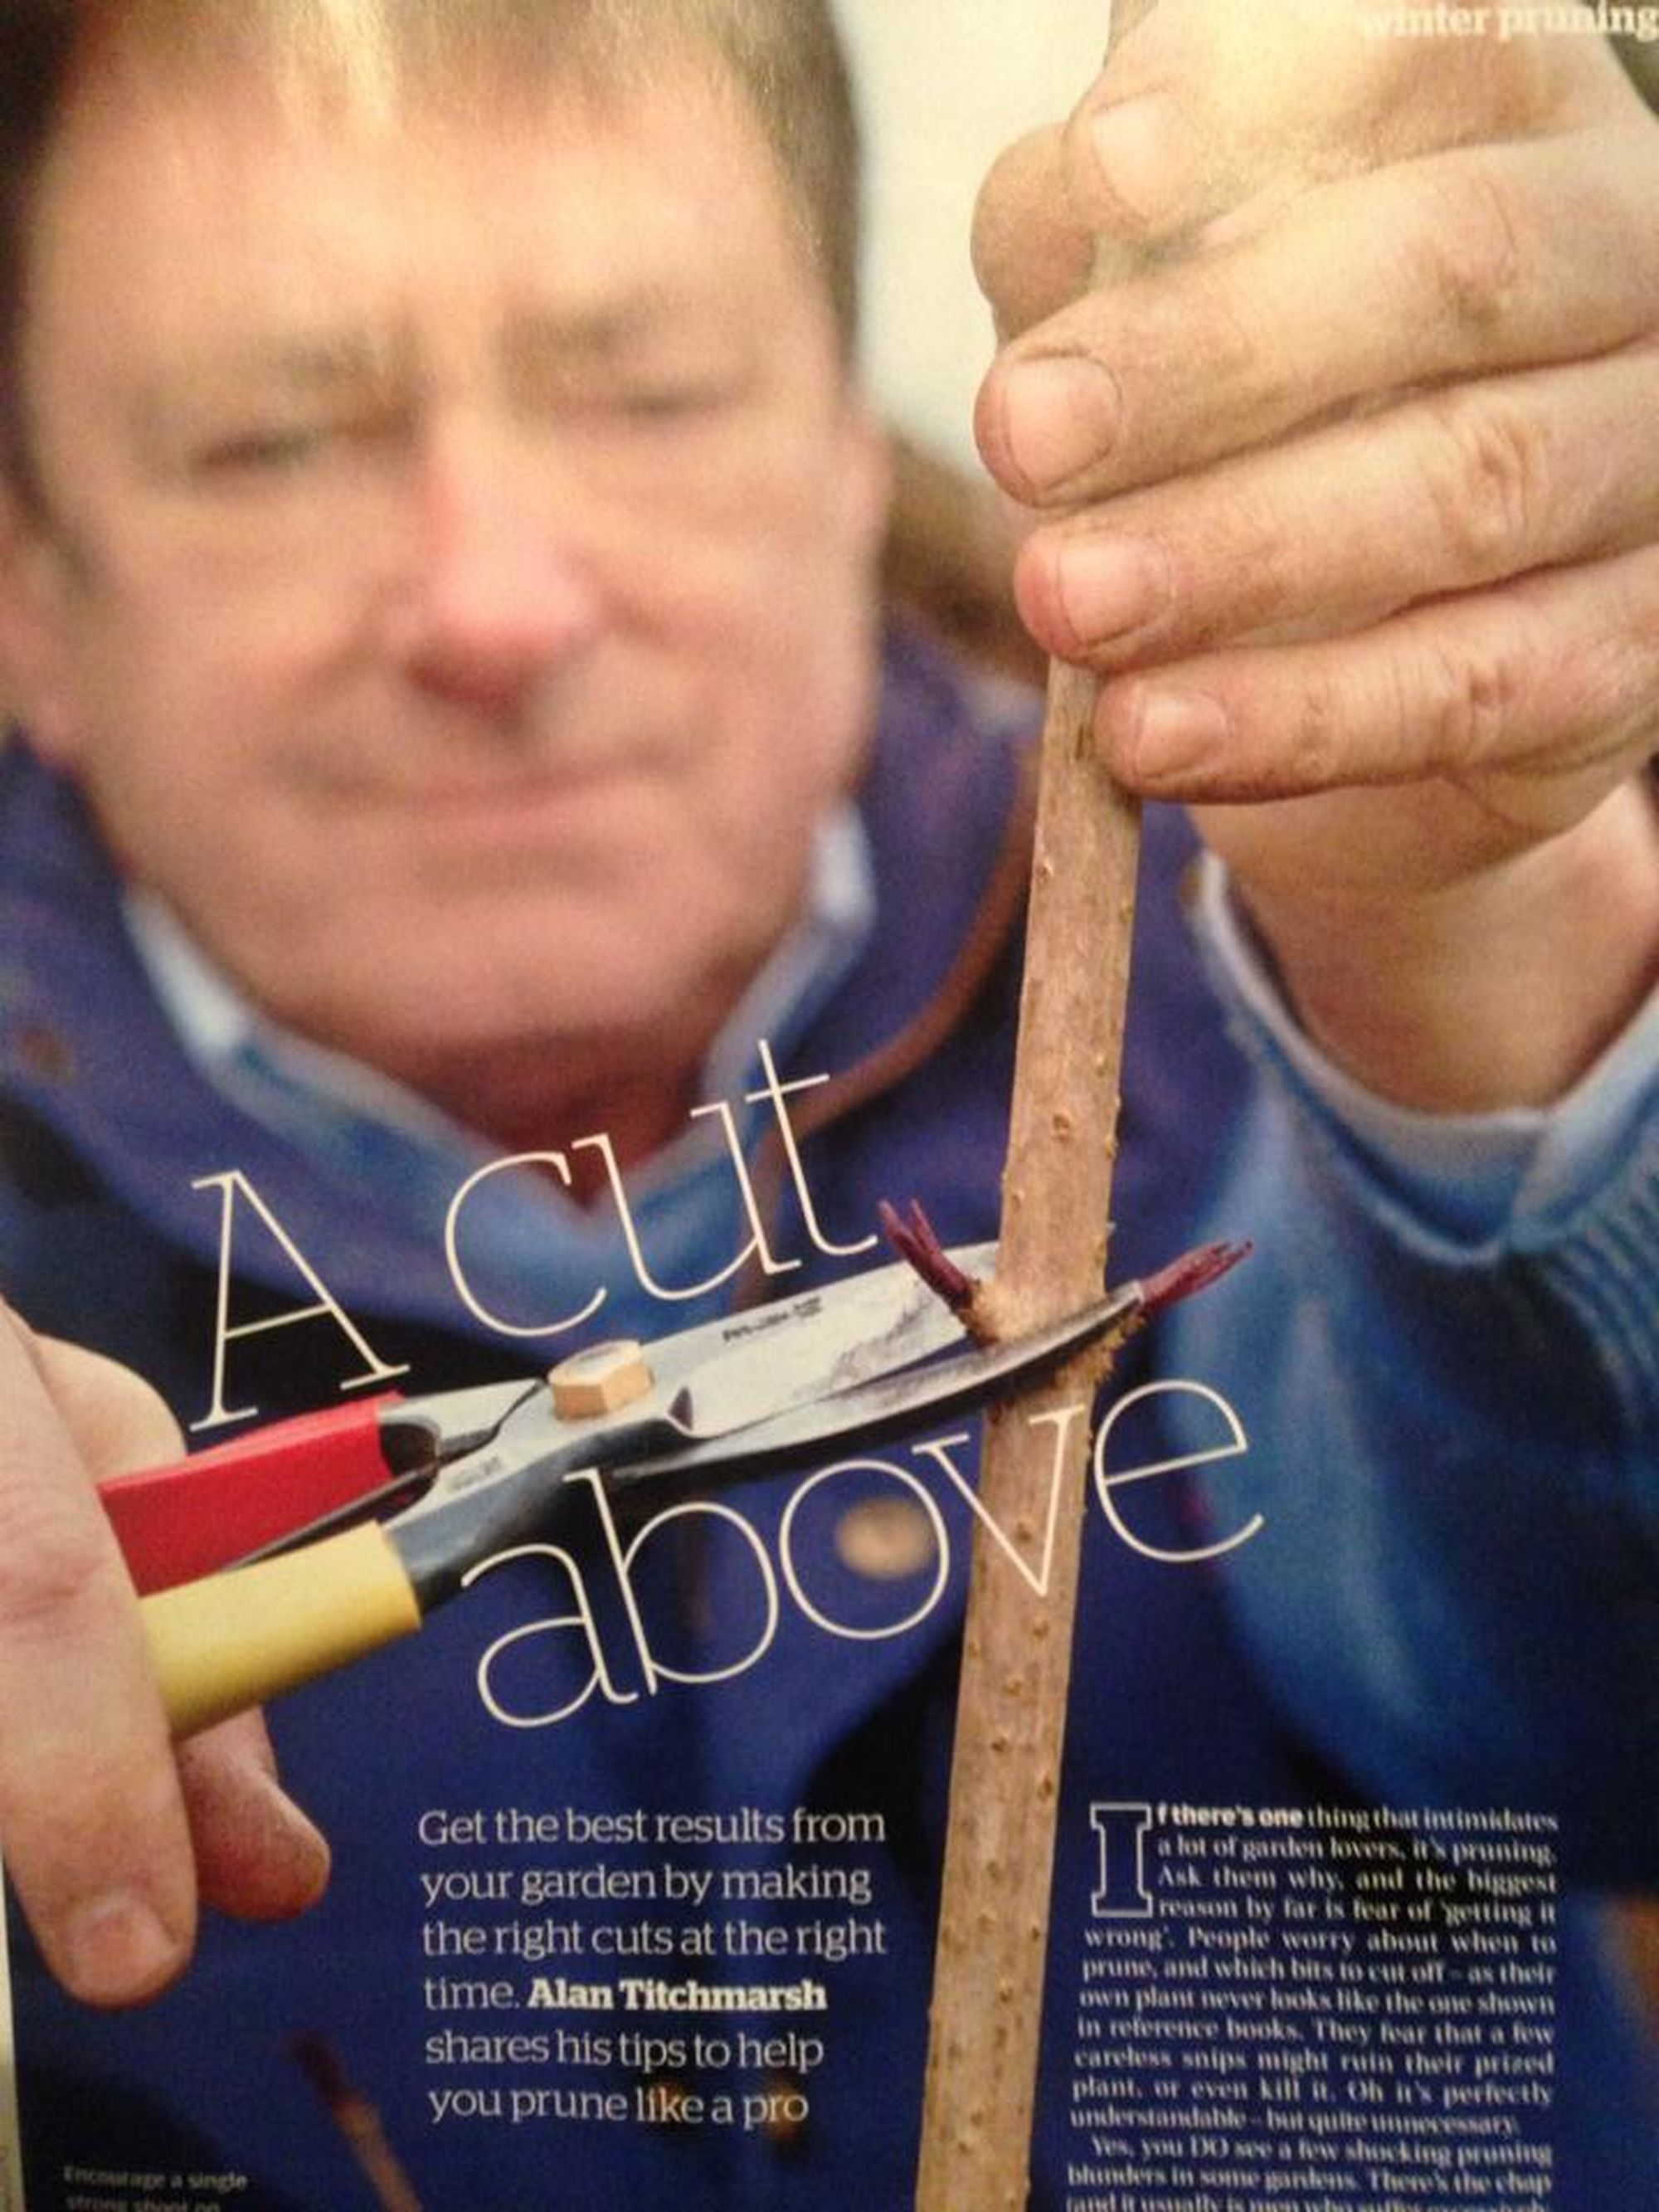 Alan Titchmarsh: a cut above